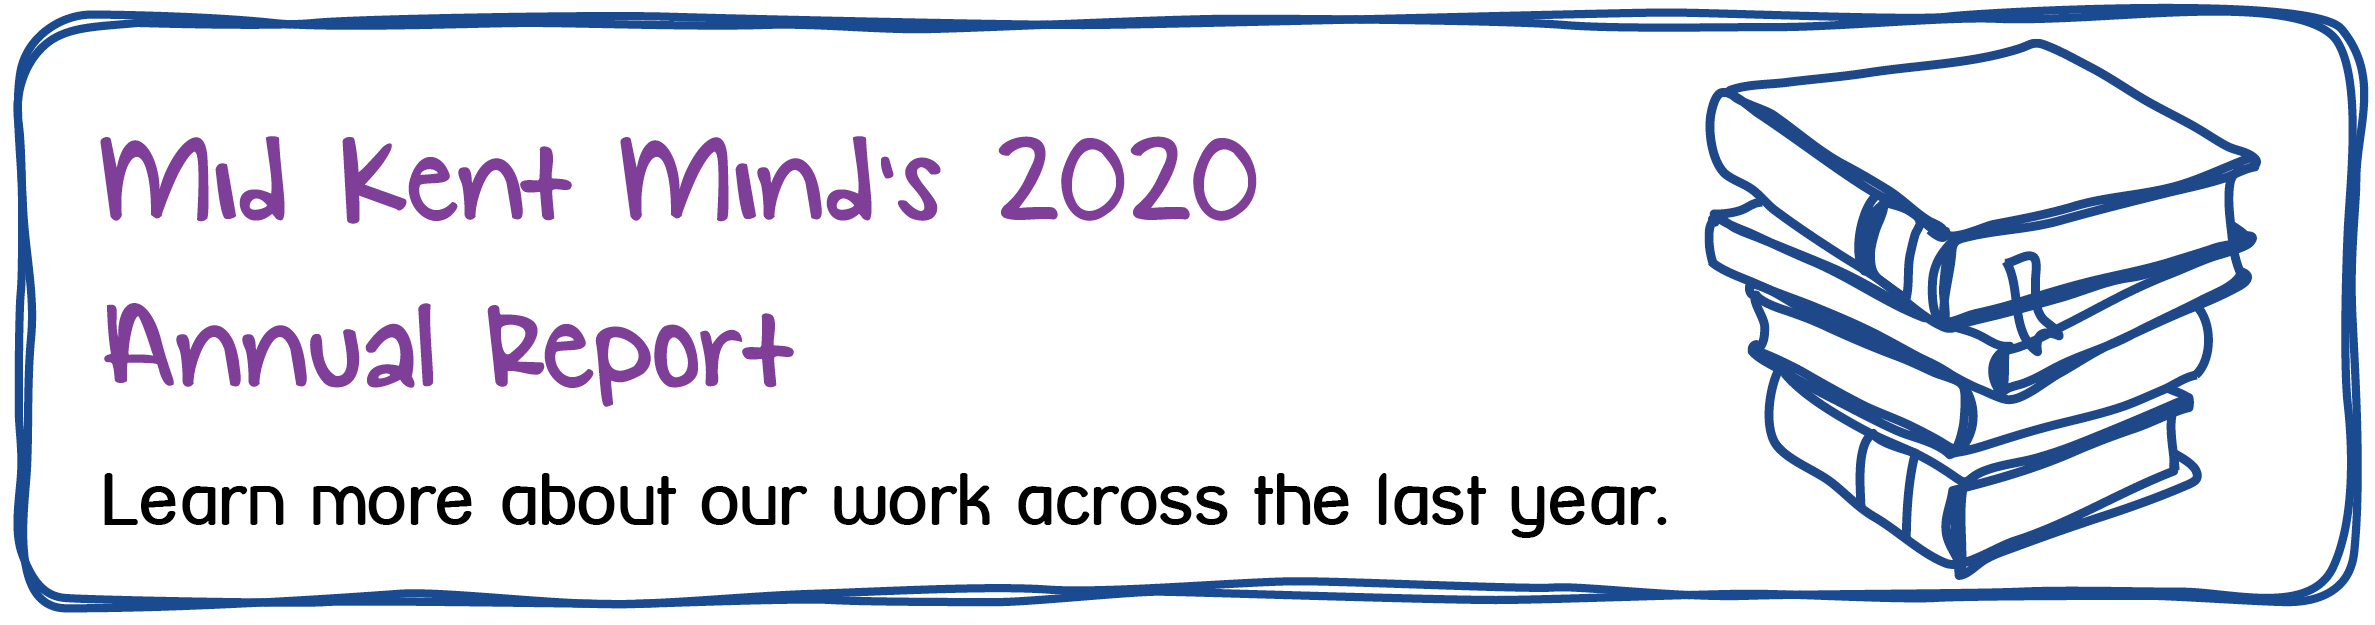 Mid Kent Mind's 2020 Annual Report - Learn more about our work across the last year.